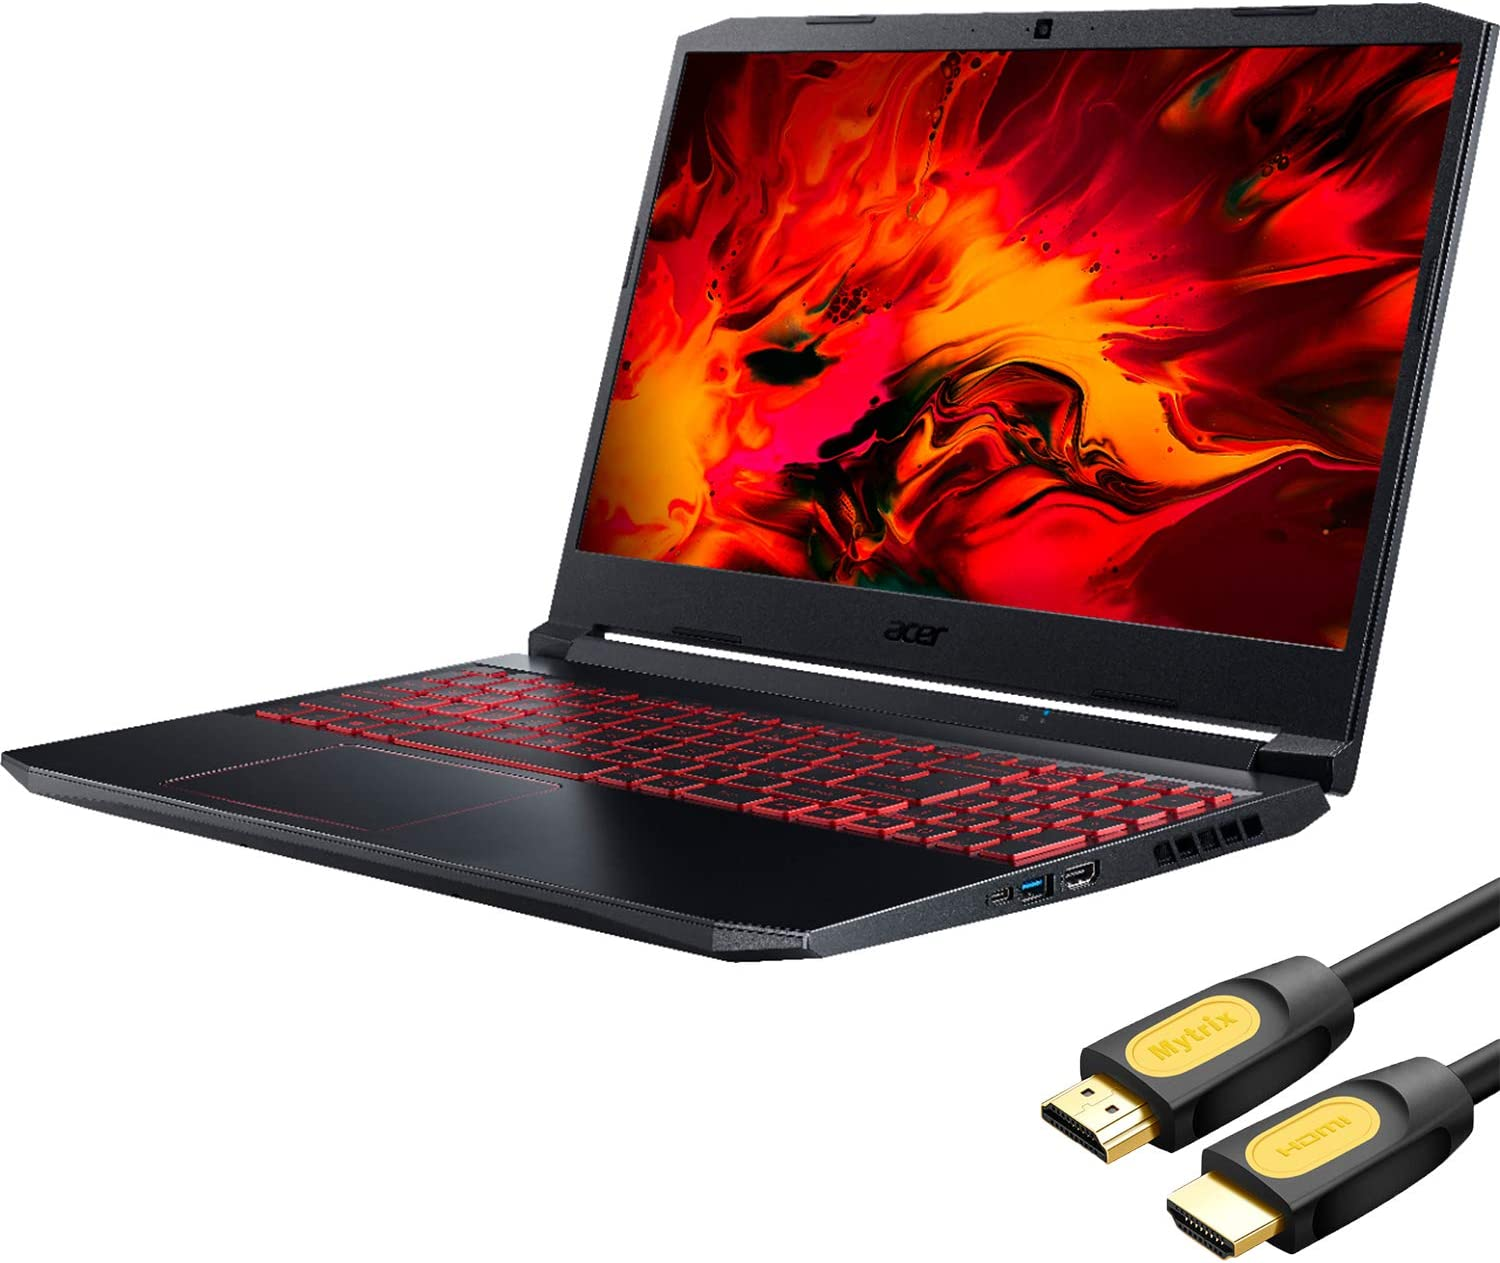 "Acer Nitro 5 AN515 Gaming Laptop, 15.6"" IPS FHD, AMD Ryzen 5 4600H (Beat i7-9750H), GTX 1650, 6 Cores up to 4.00 GHz, 8GB RAM, 512GB SSD, Backlit, RJ-45, Wi-Fi 6, Mytrix HDMI Cable, Win 10"